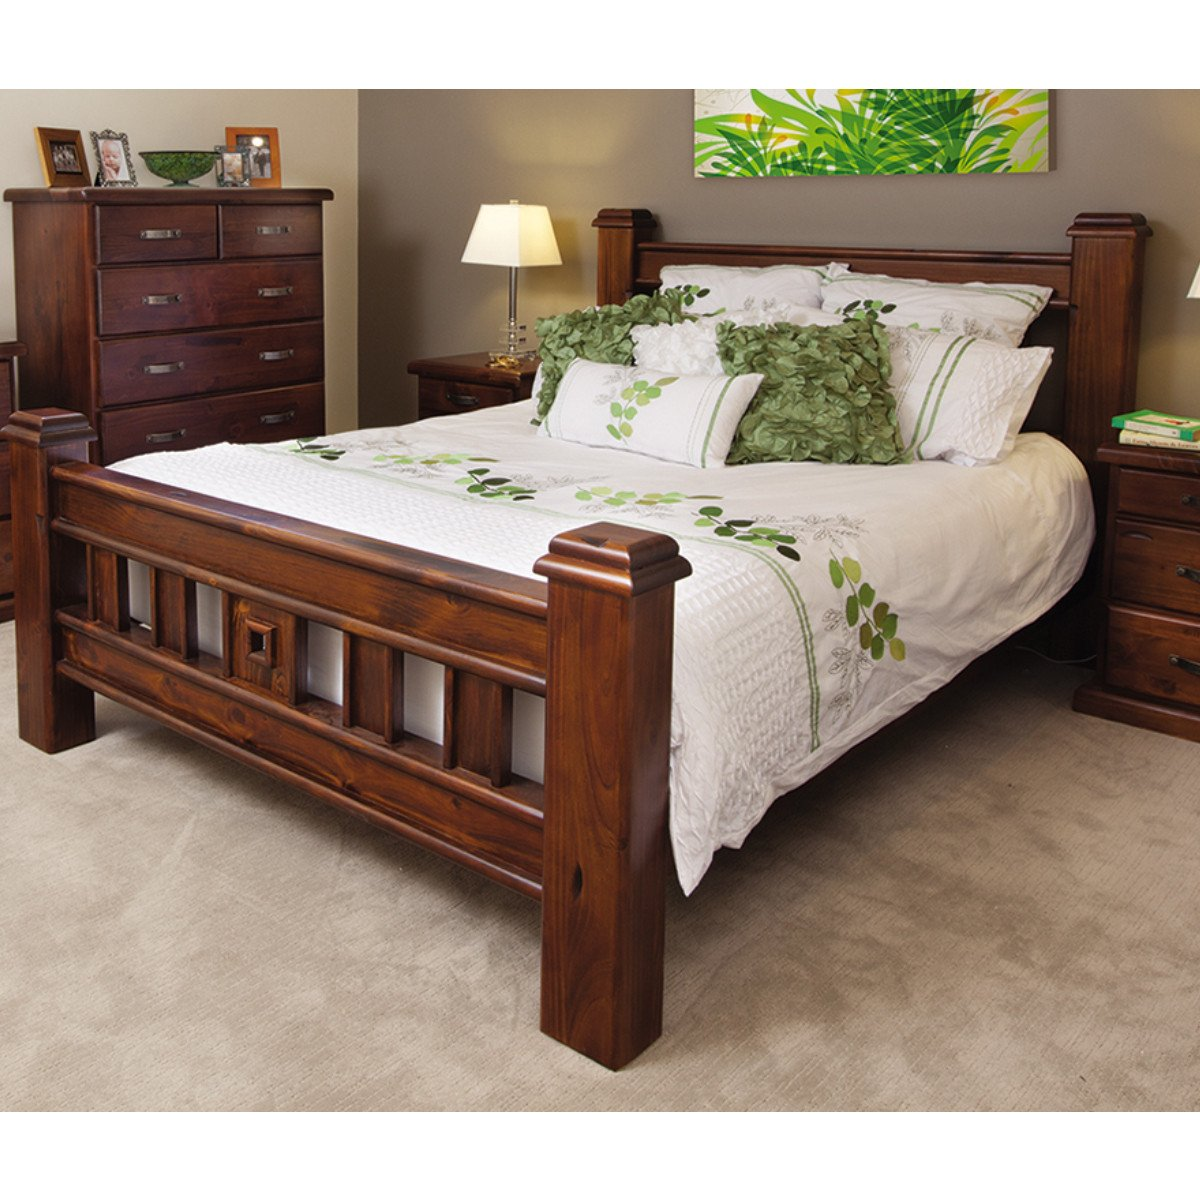 Description. Queen Package With Tallboy Includes 1x Queen Bed